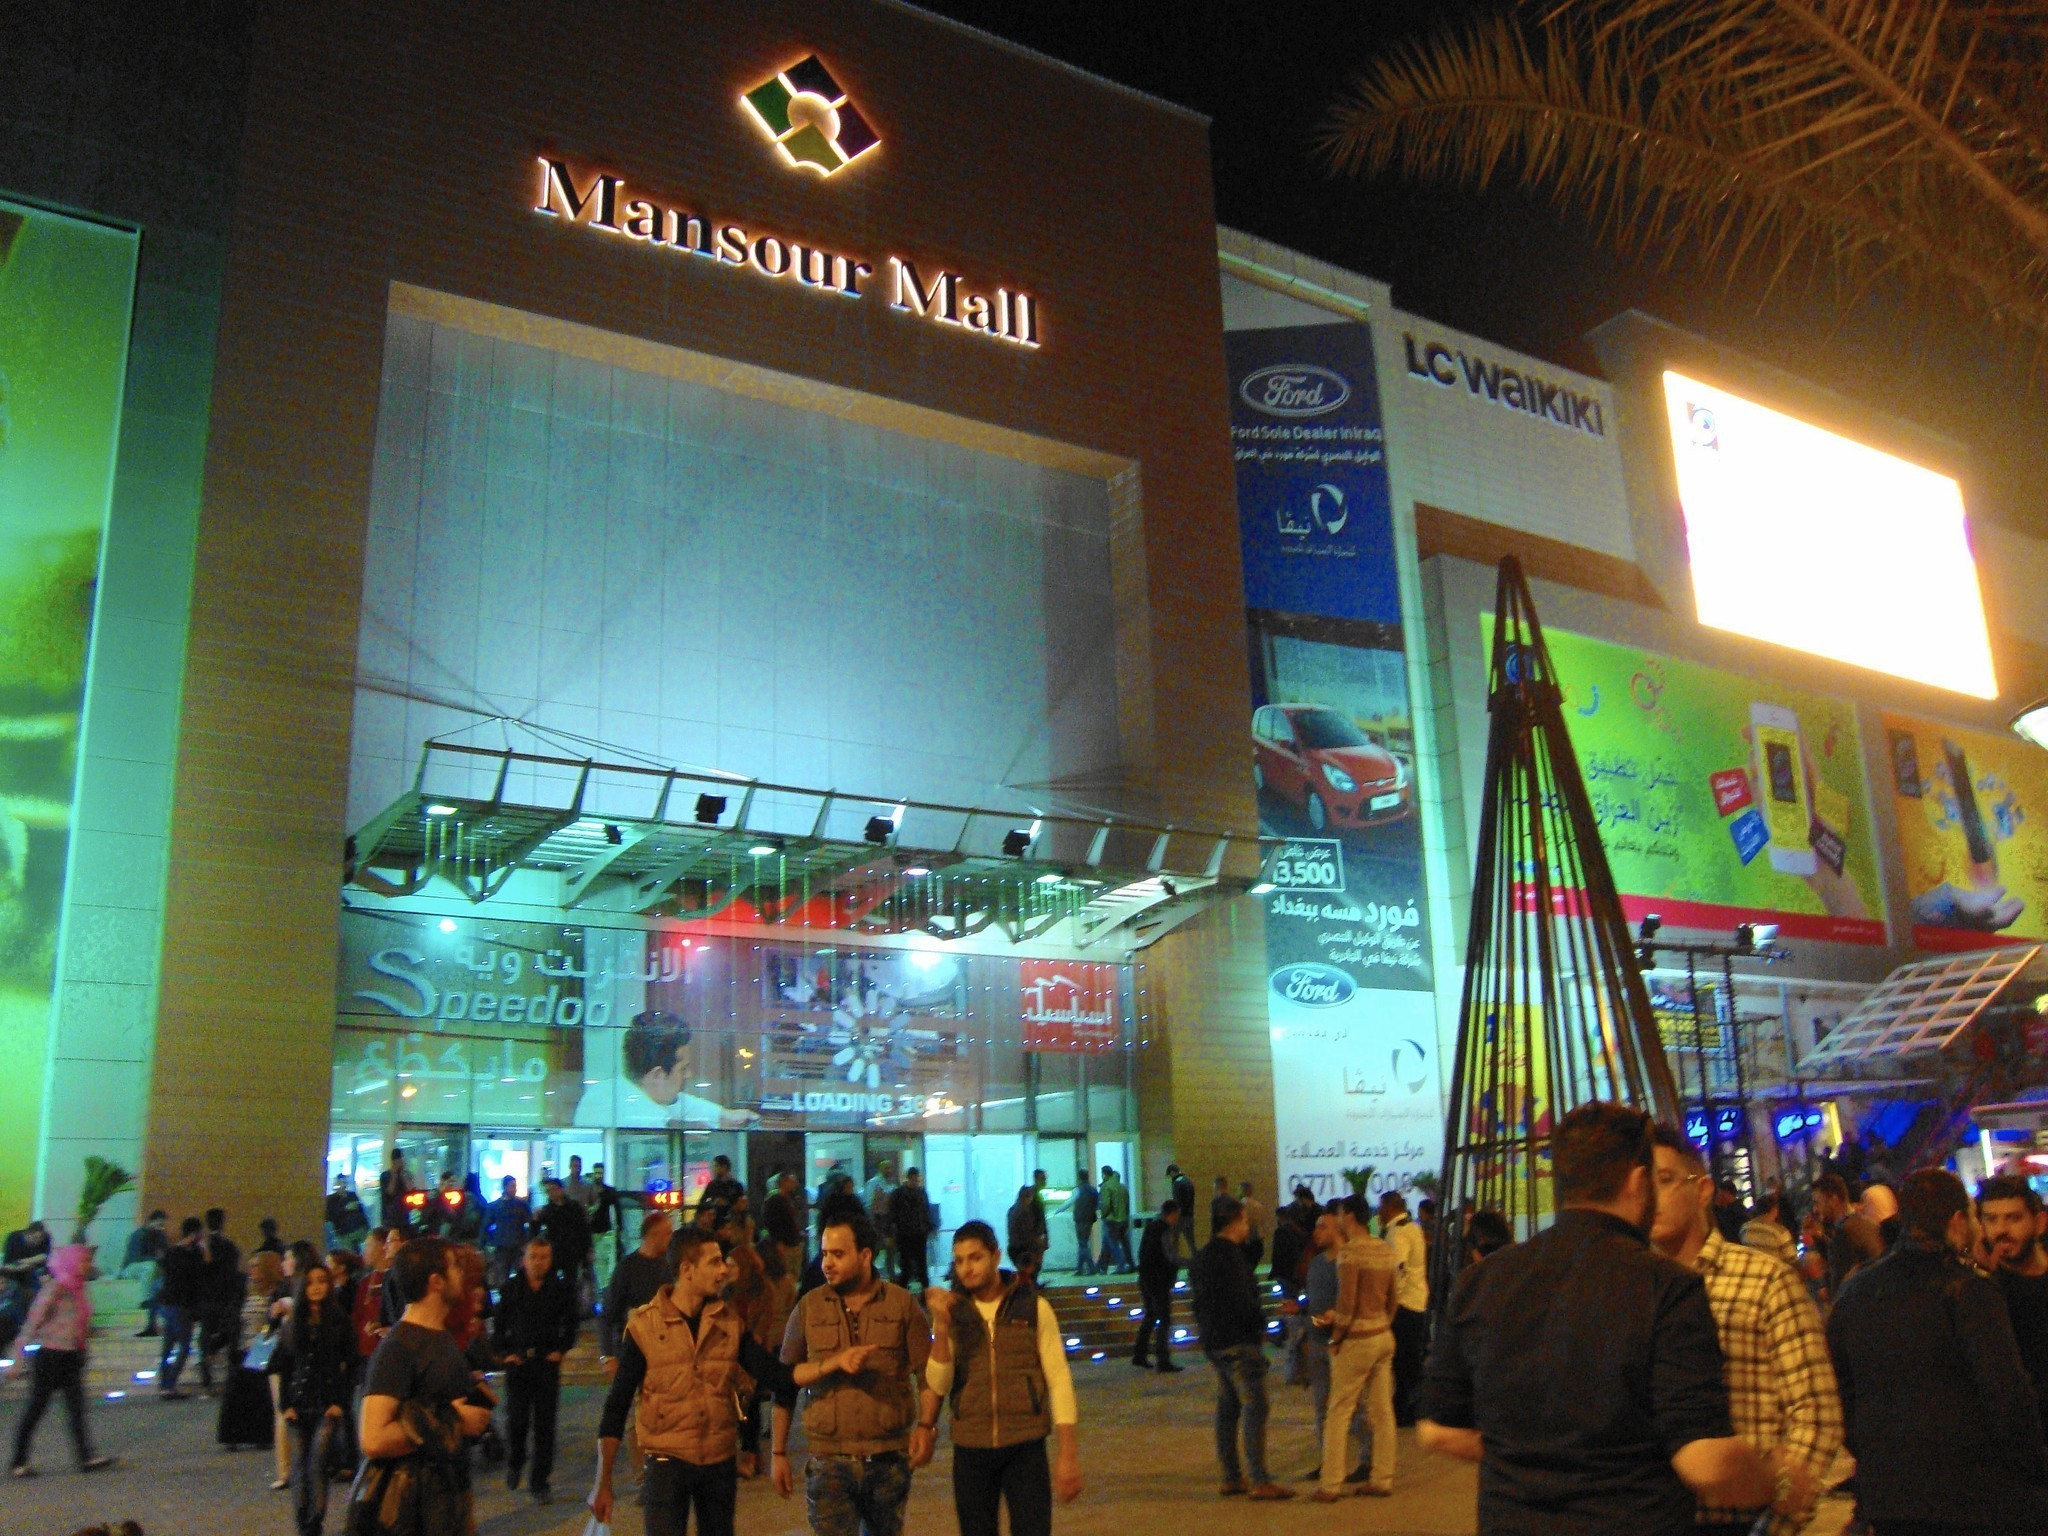 Mansour Mall in Baghdad, Iraq. Photo by Molly Hennessy-Fisk/Los Angeles Times.